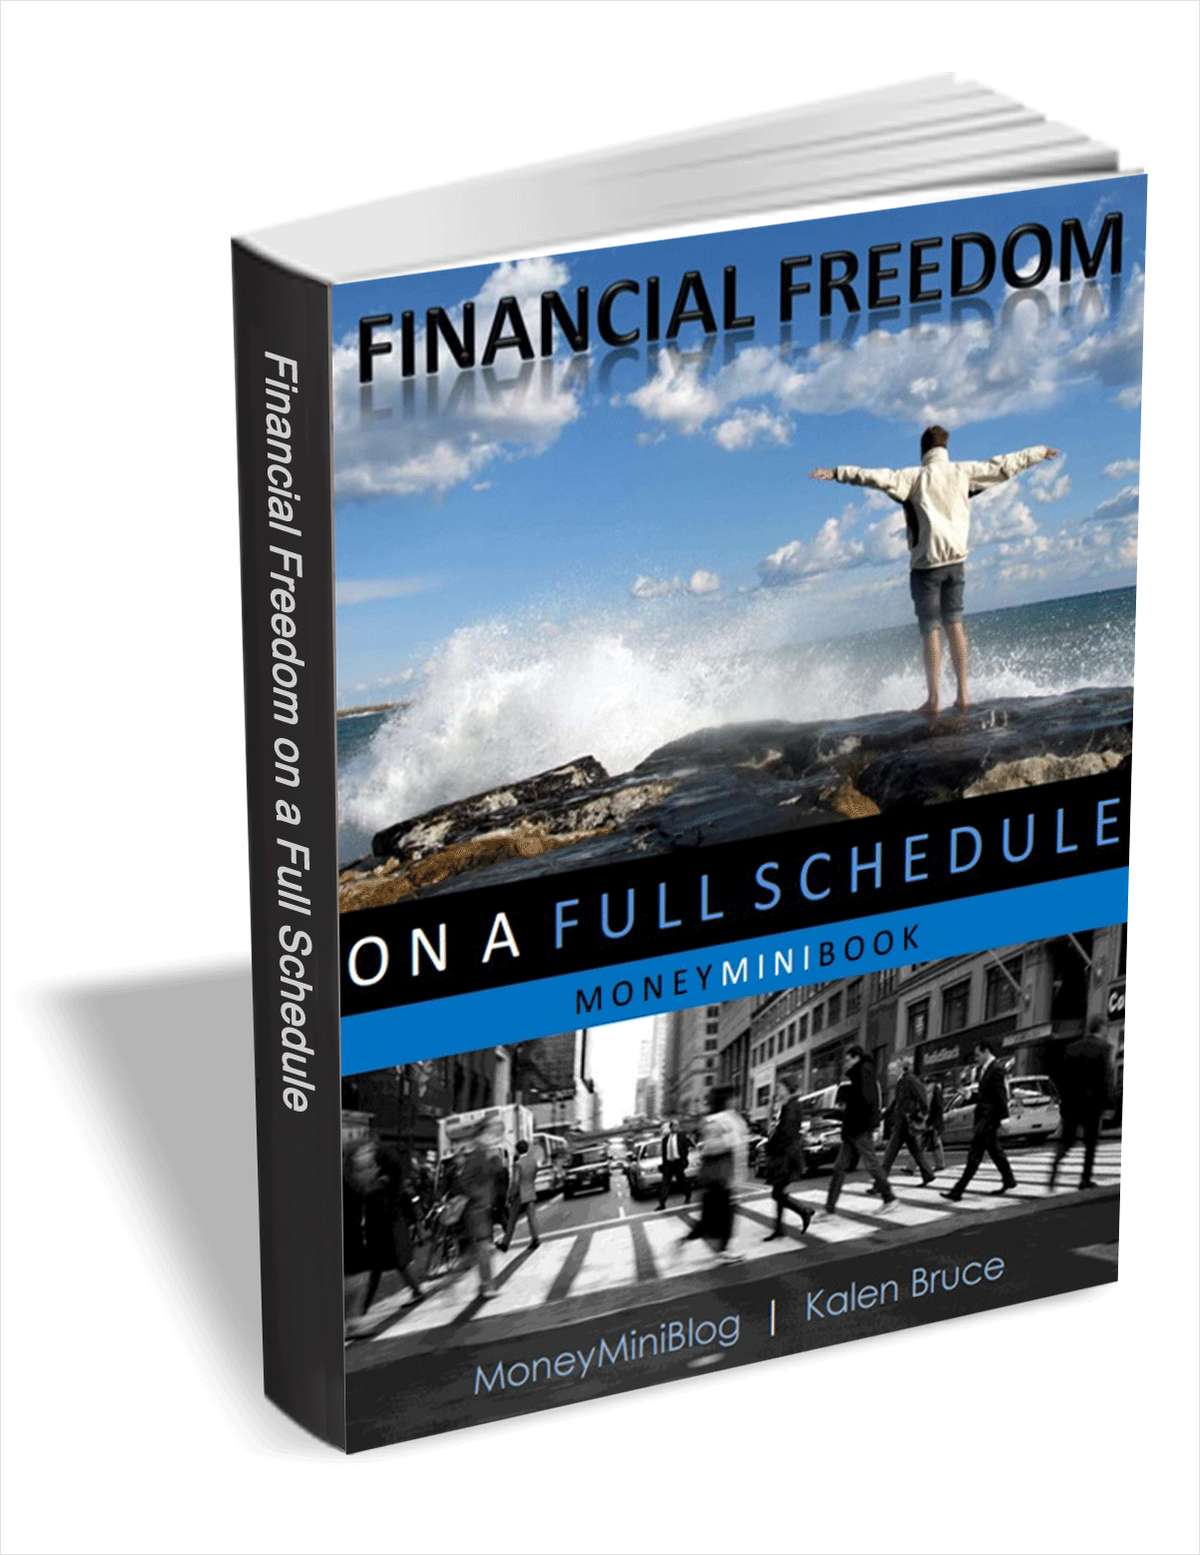 Financial Freedom on a Full Schedule